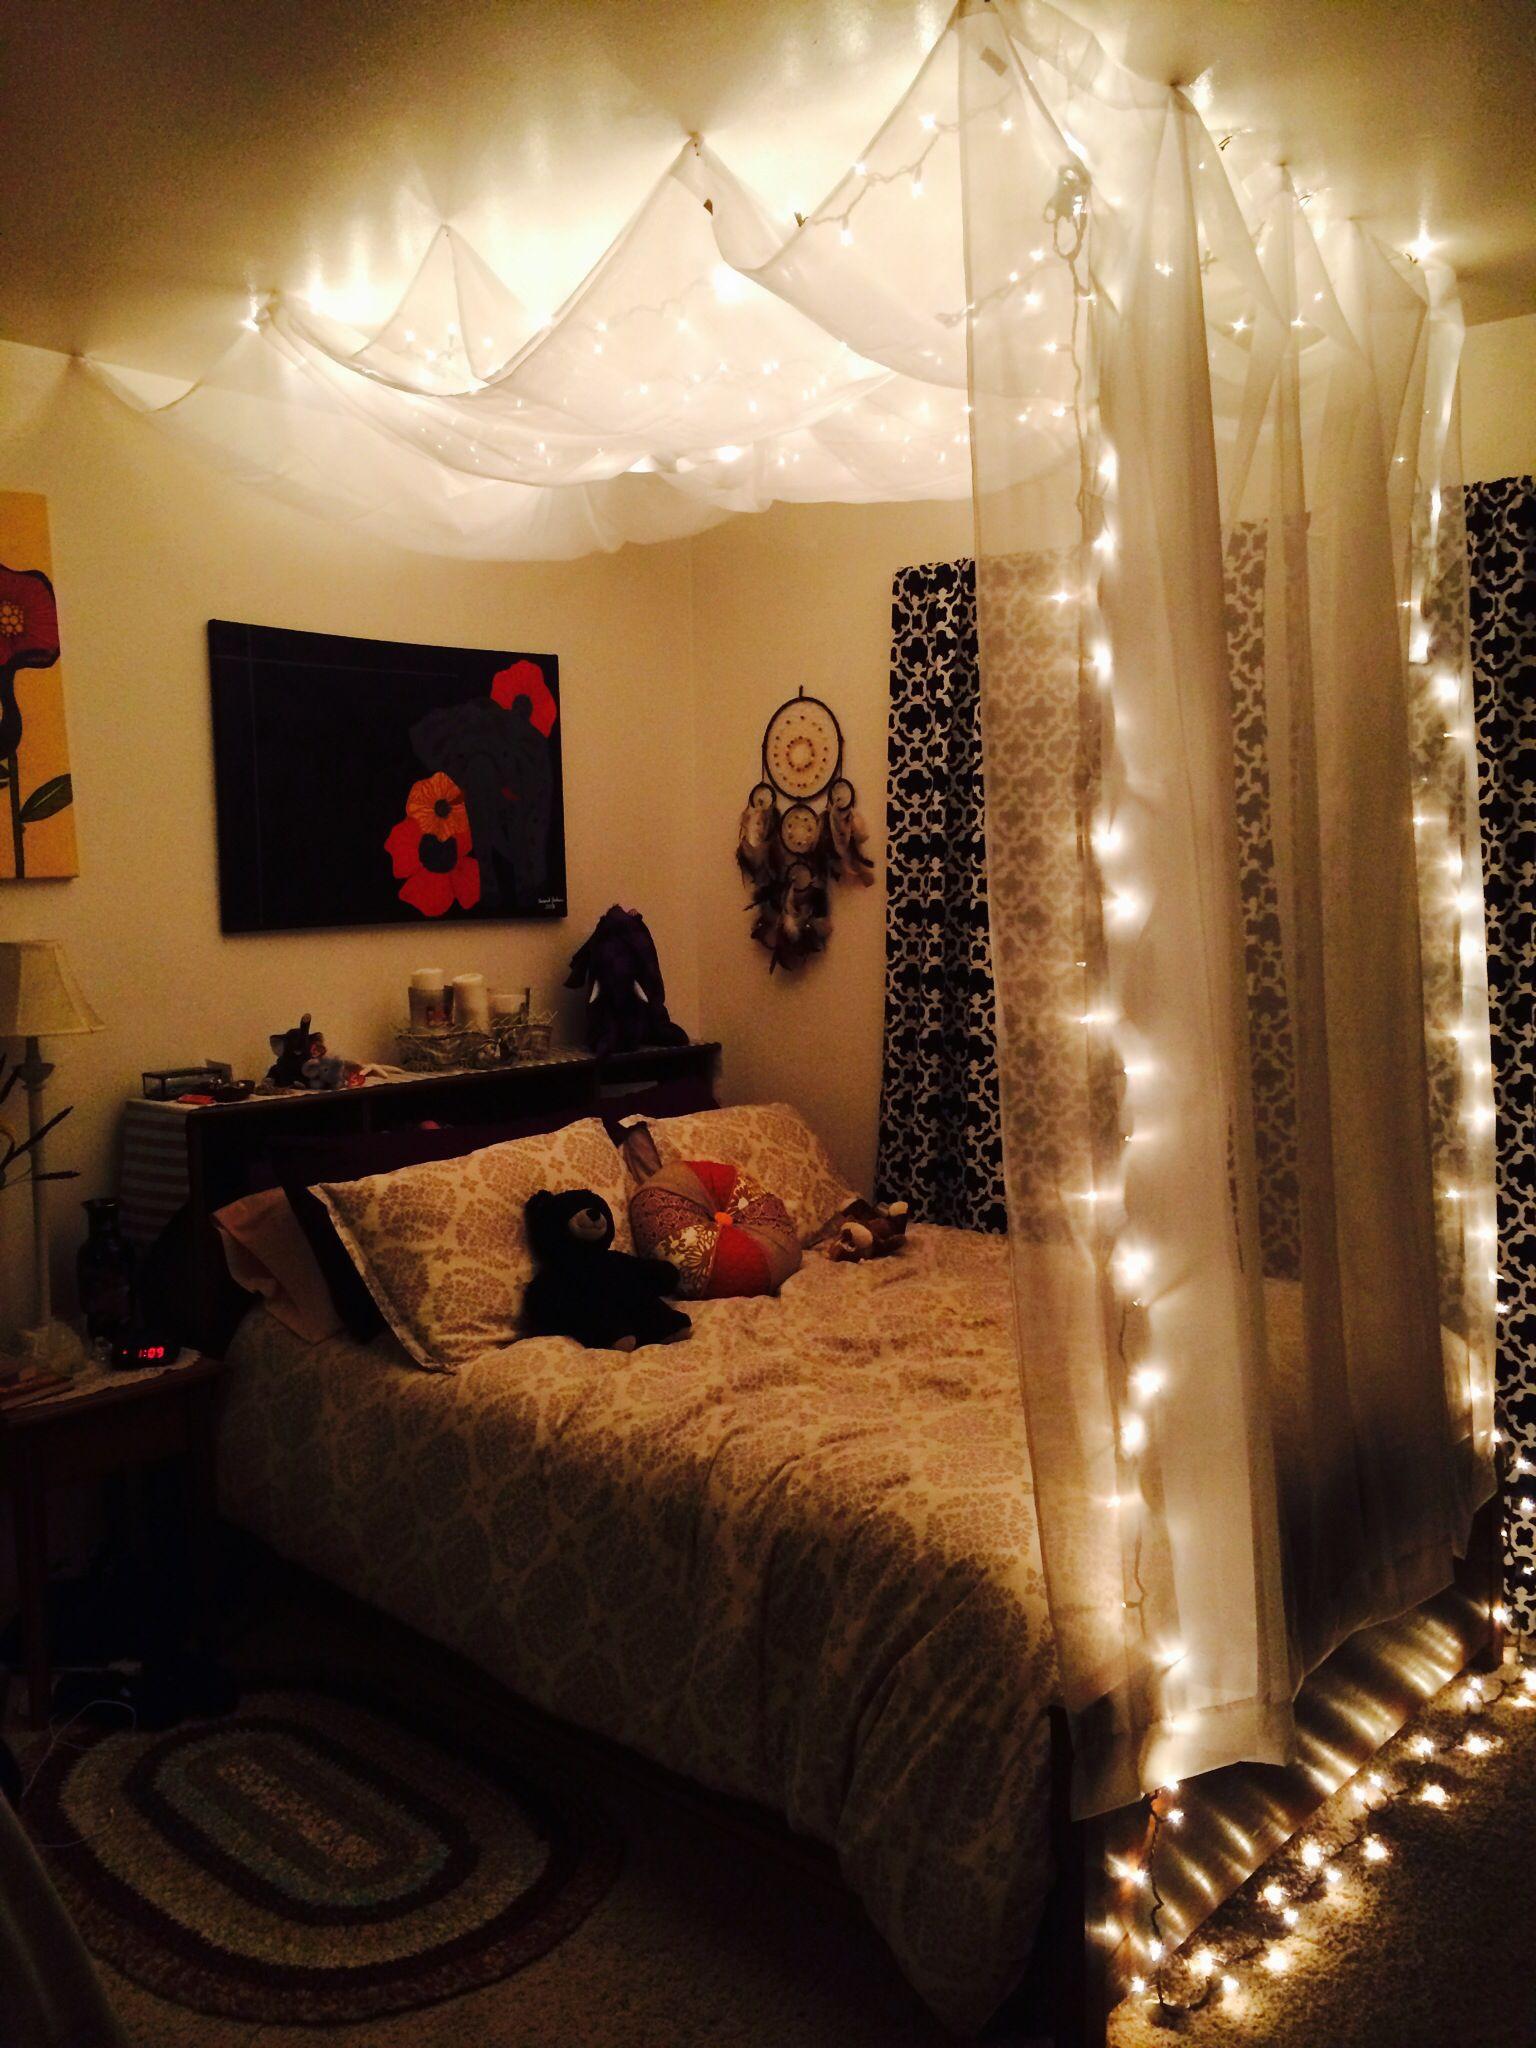 Best ideas about DIY Bed Canopy With Lights . Save or Pin Quarto luzes DIY Hanging Bed Canopy Using $5 sheer Now.